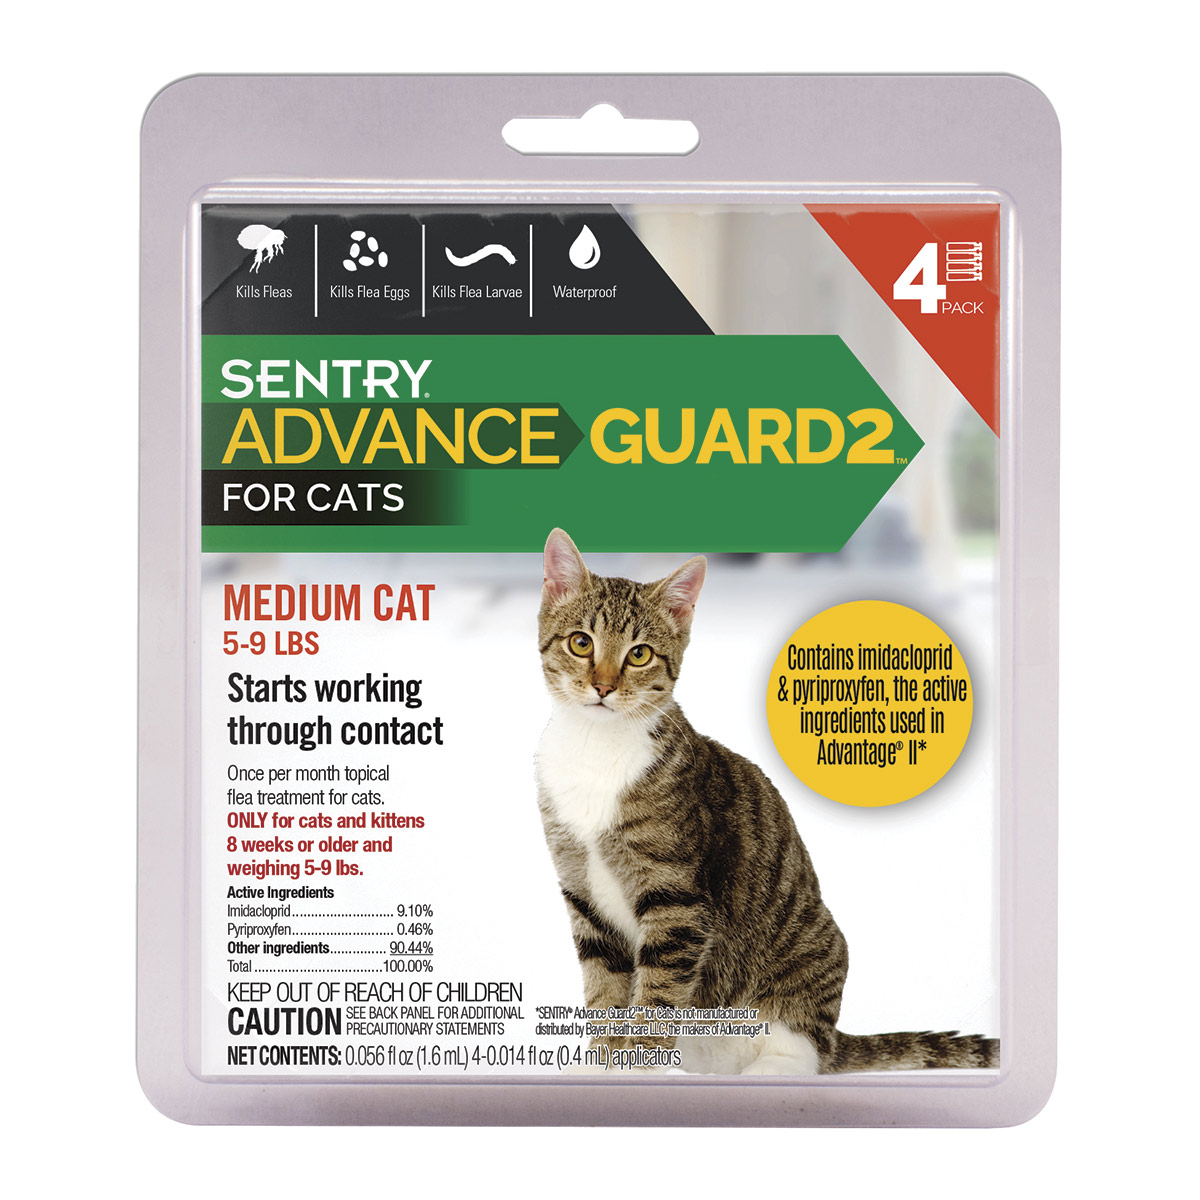 4 Count Sentry Advance Guard 2 Small Cat 5 - 9 lbs